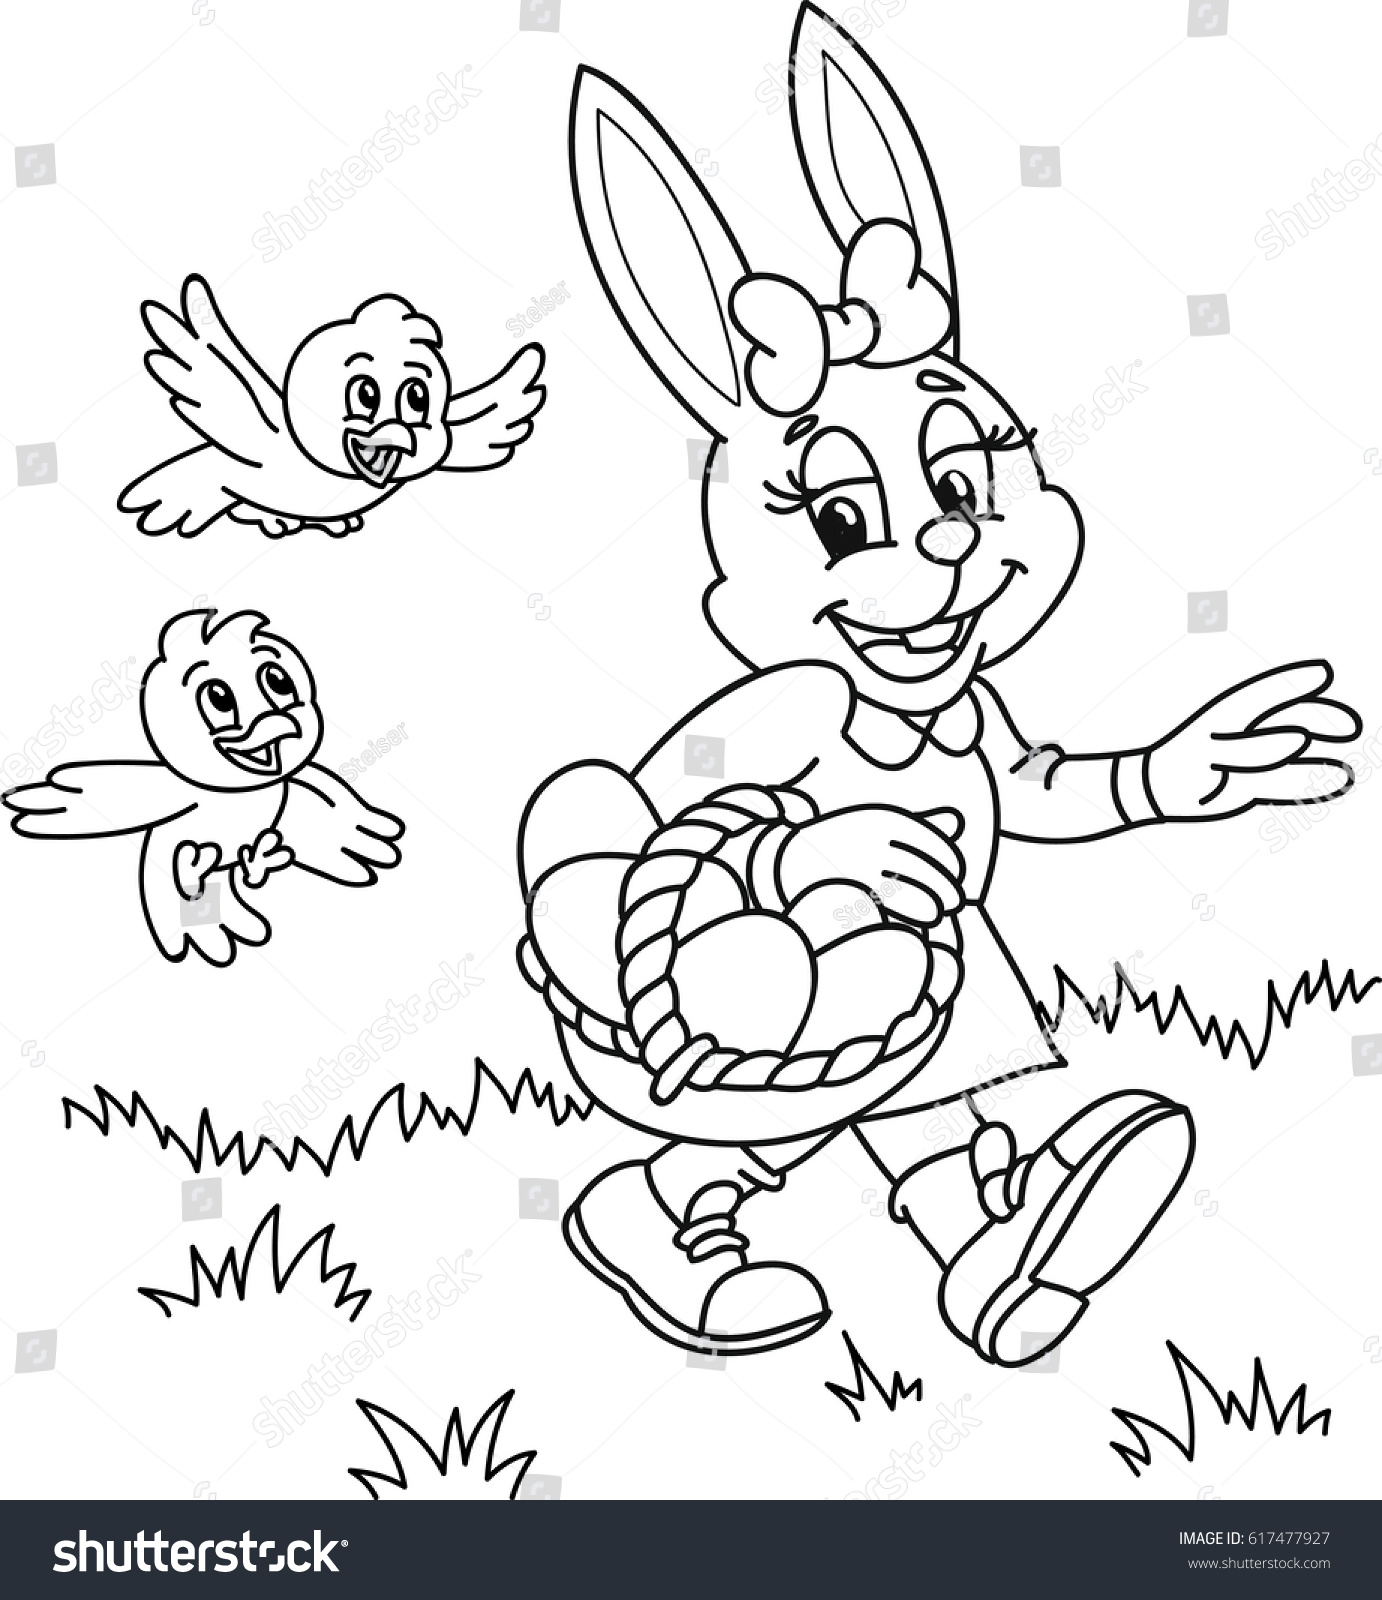 Coloring Page Outline Cartoon Easter Bunny Stock Vector